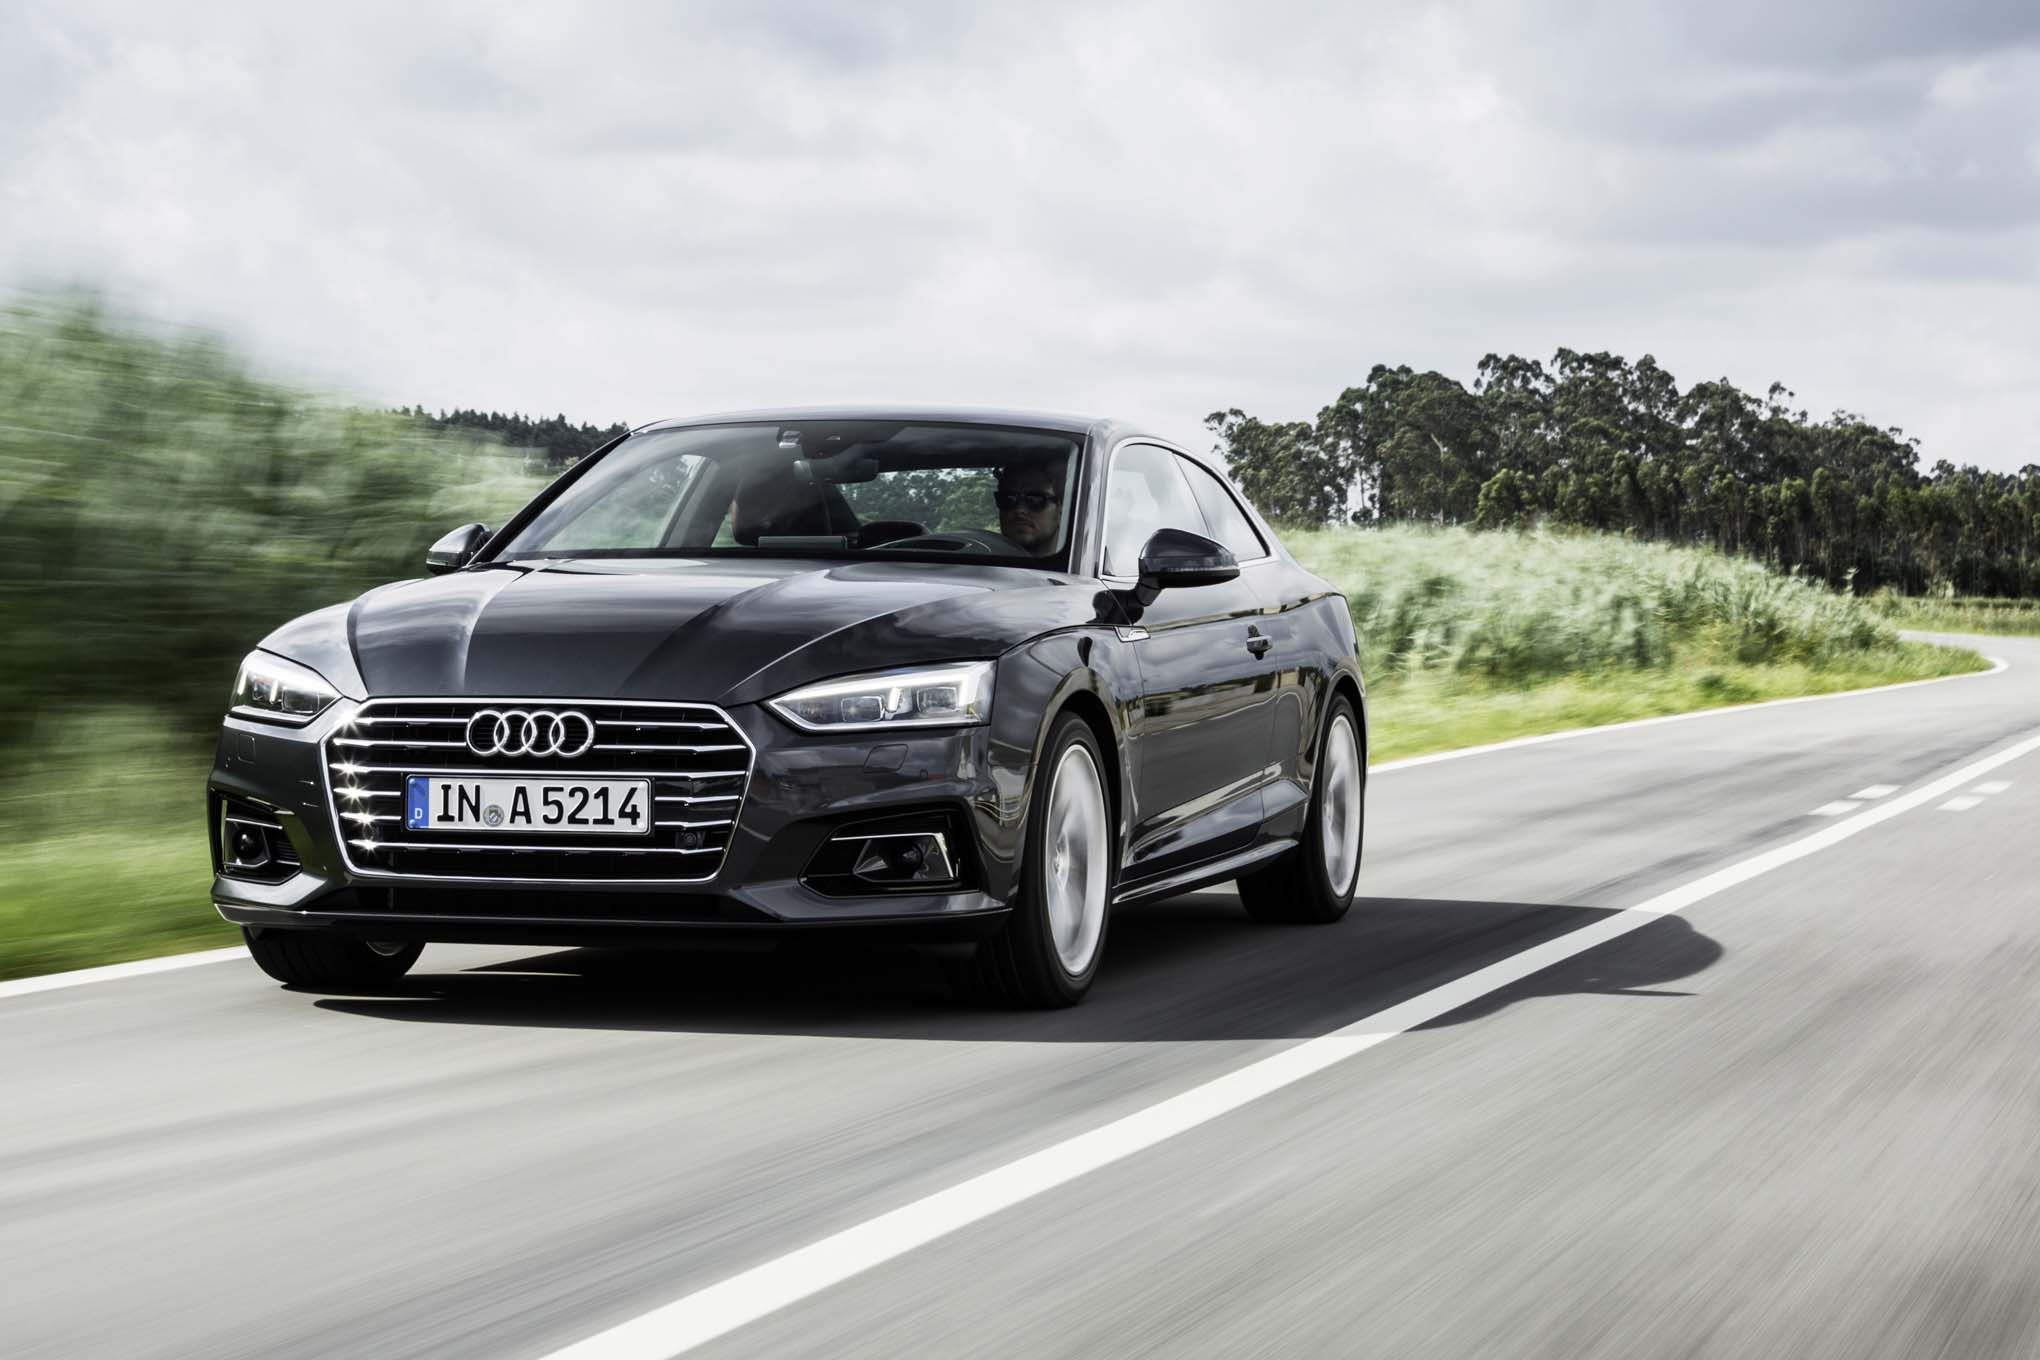 2018 Audi A5 front three quarter in motion 09 - Automobile